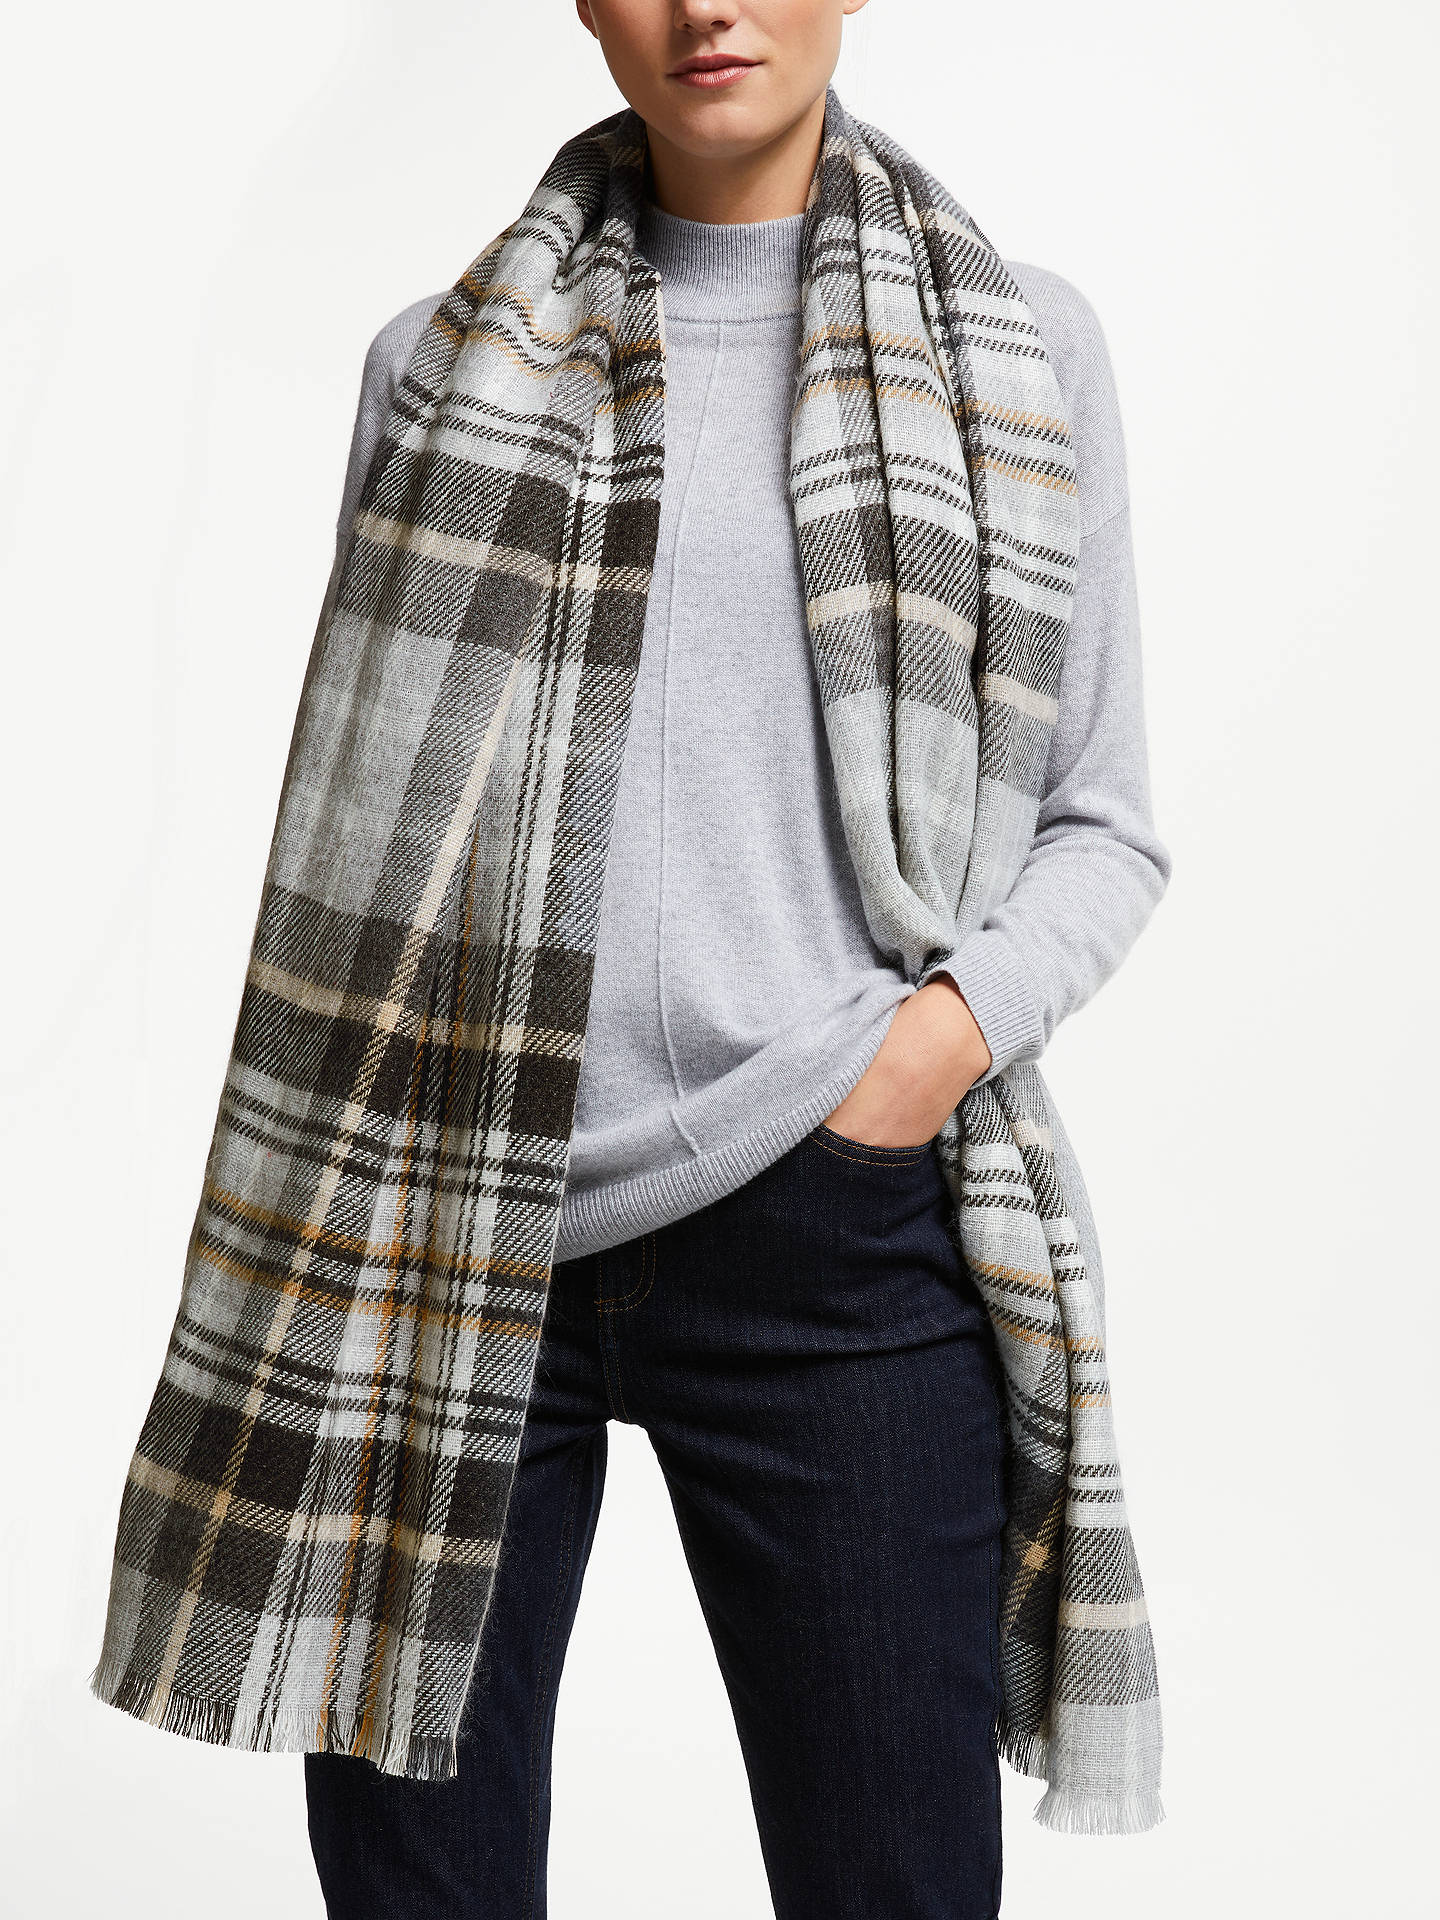 BuyJohn Lewis & Partners Cashmink Double Faced Wrap, Grey/Camel Check Online at johnlewis.com